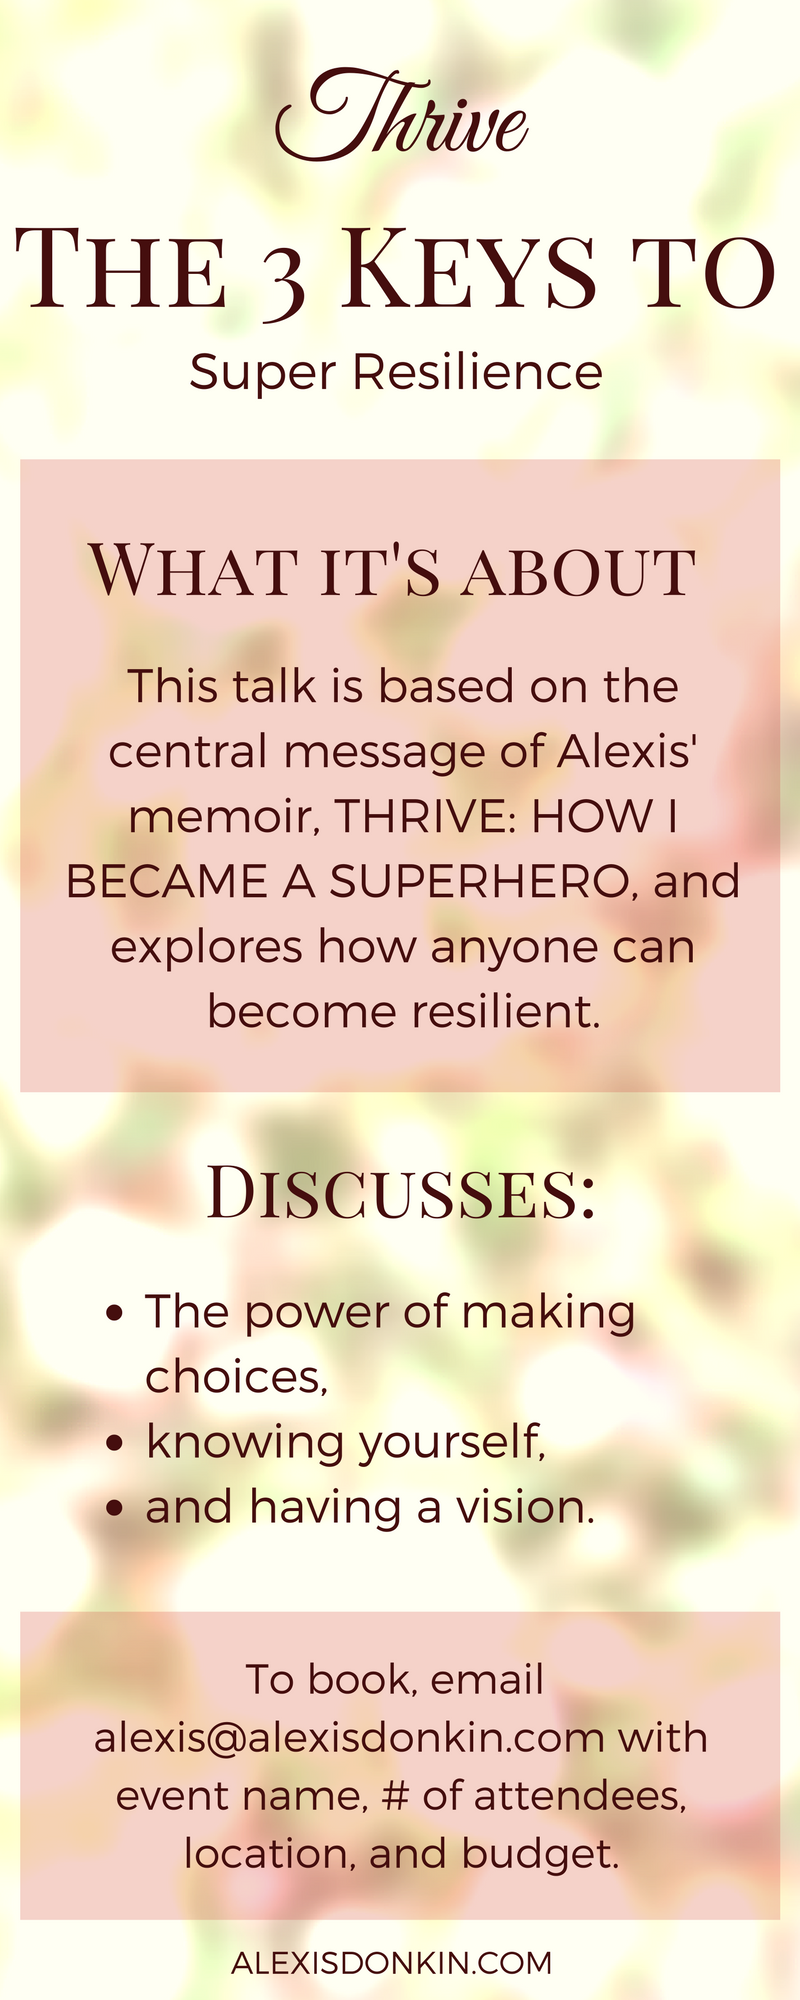 Thrive: The 3 Keys to Super Resilience